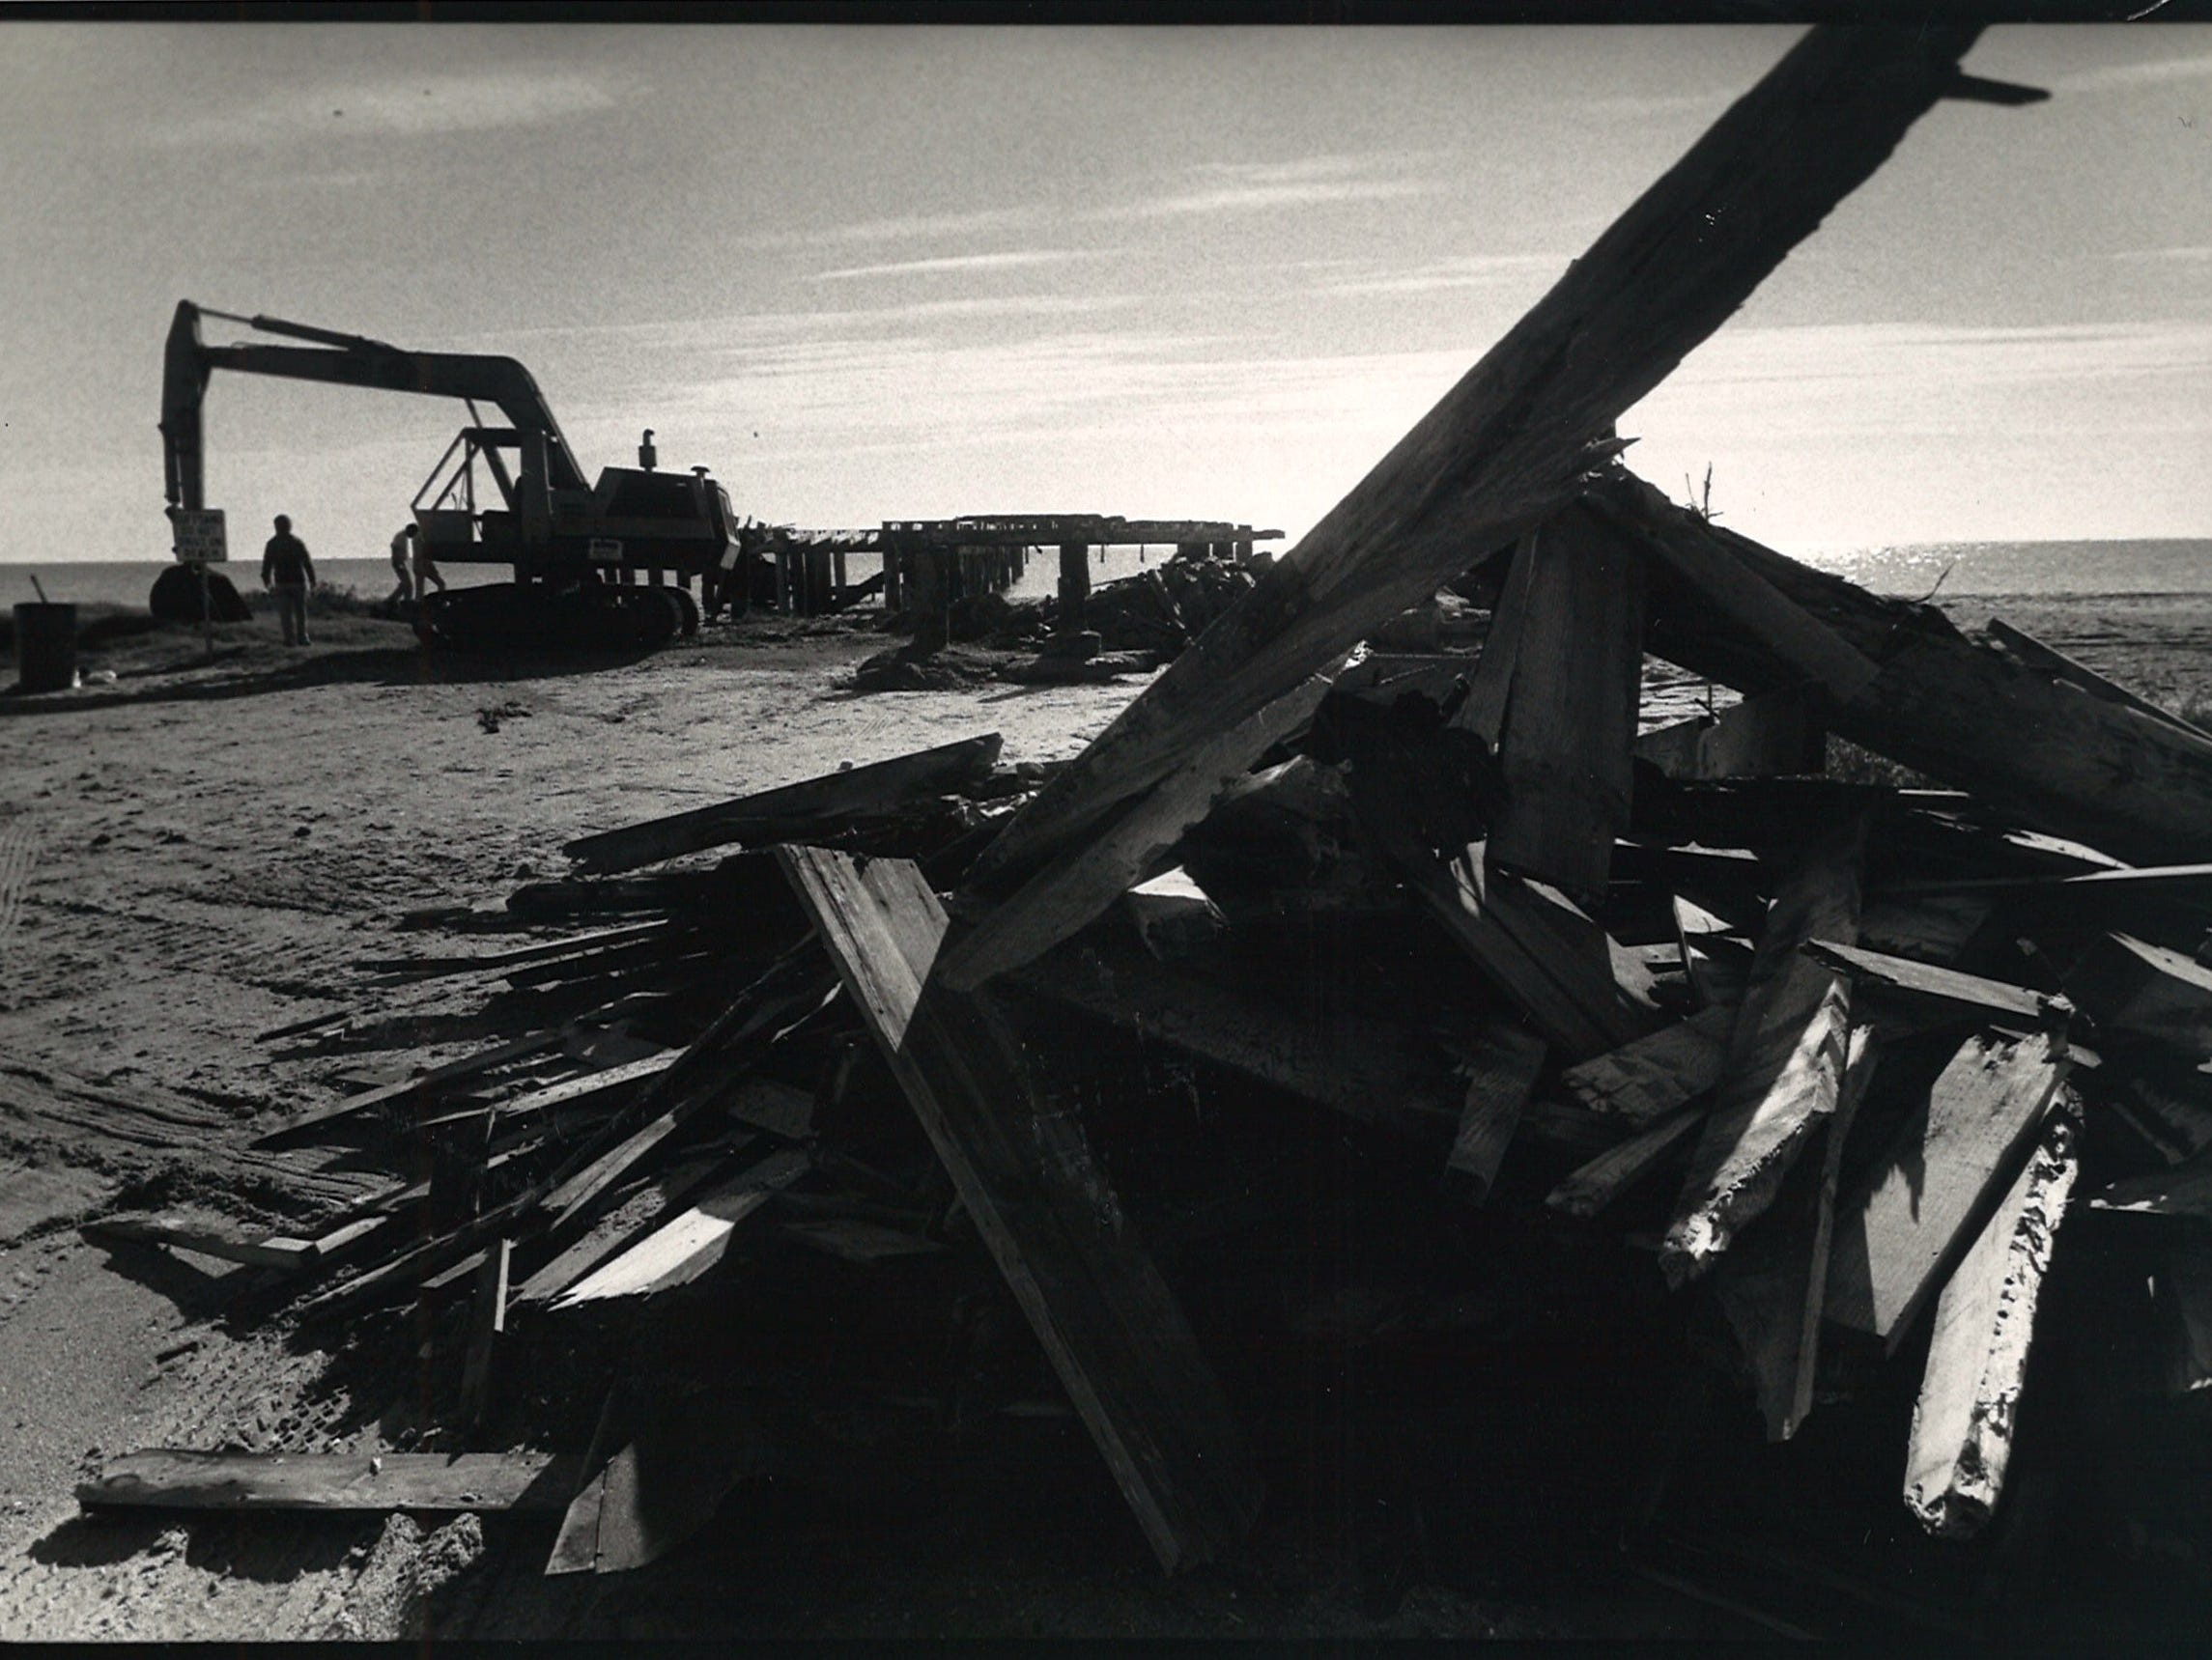 Kign Construction broke several chains and a backhoe while pulling out the pilings of a pier on Corpus Christi's North Beach on Jan. 17, 1985.